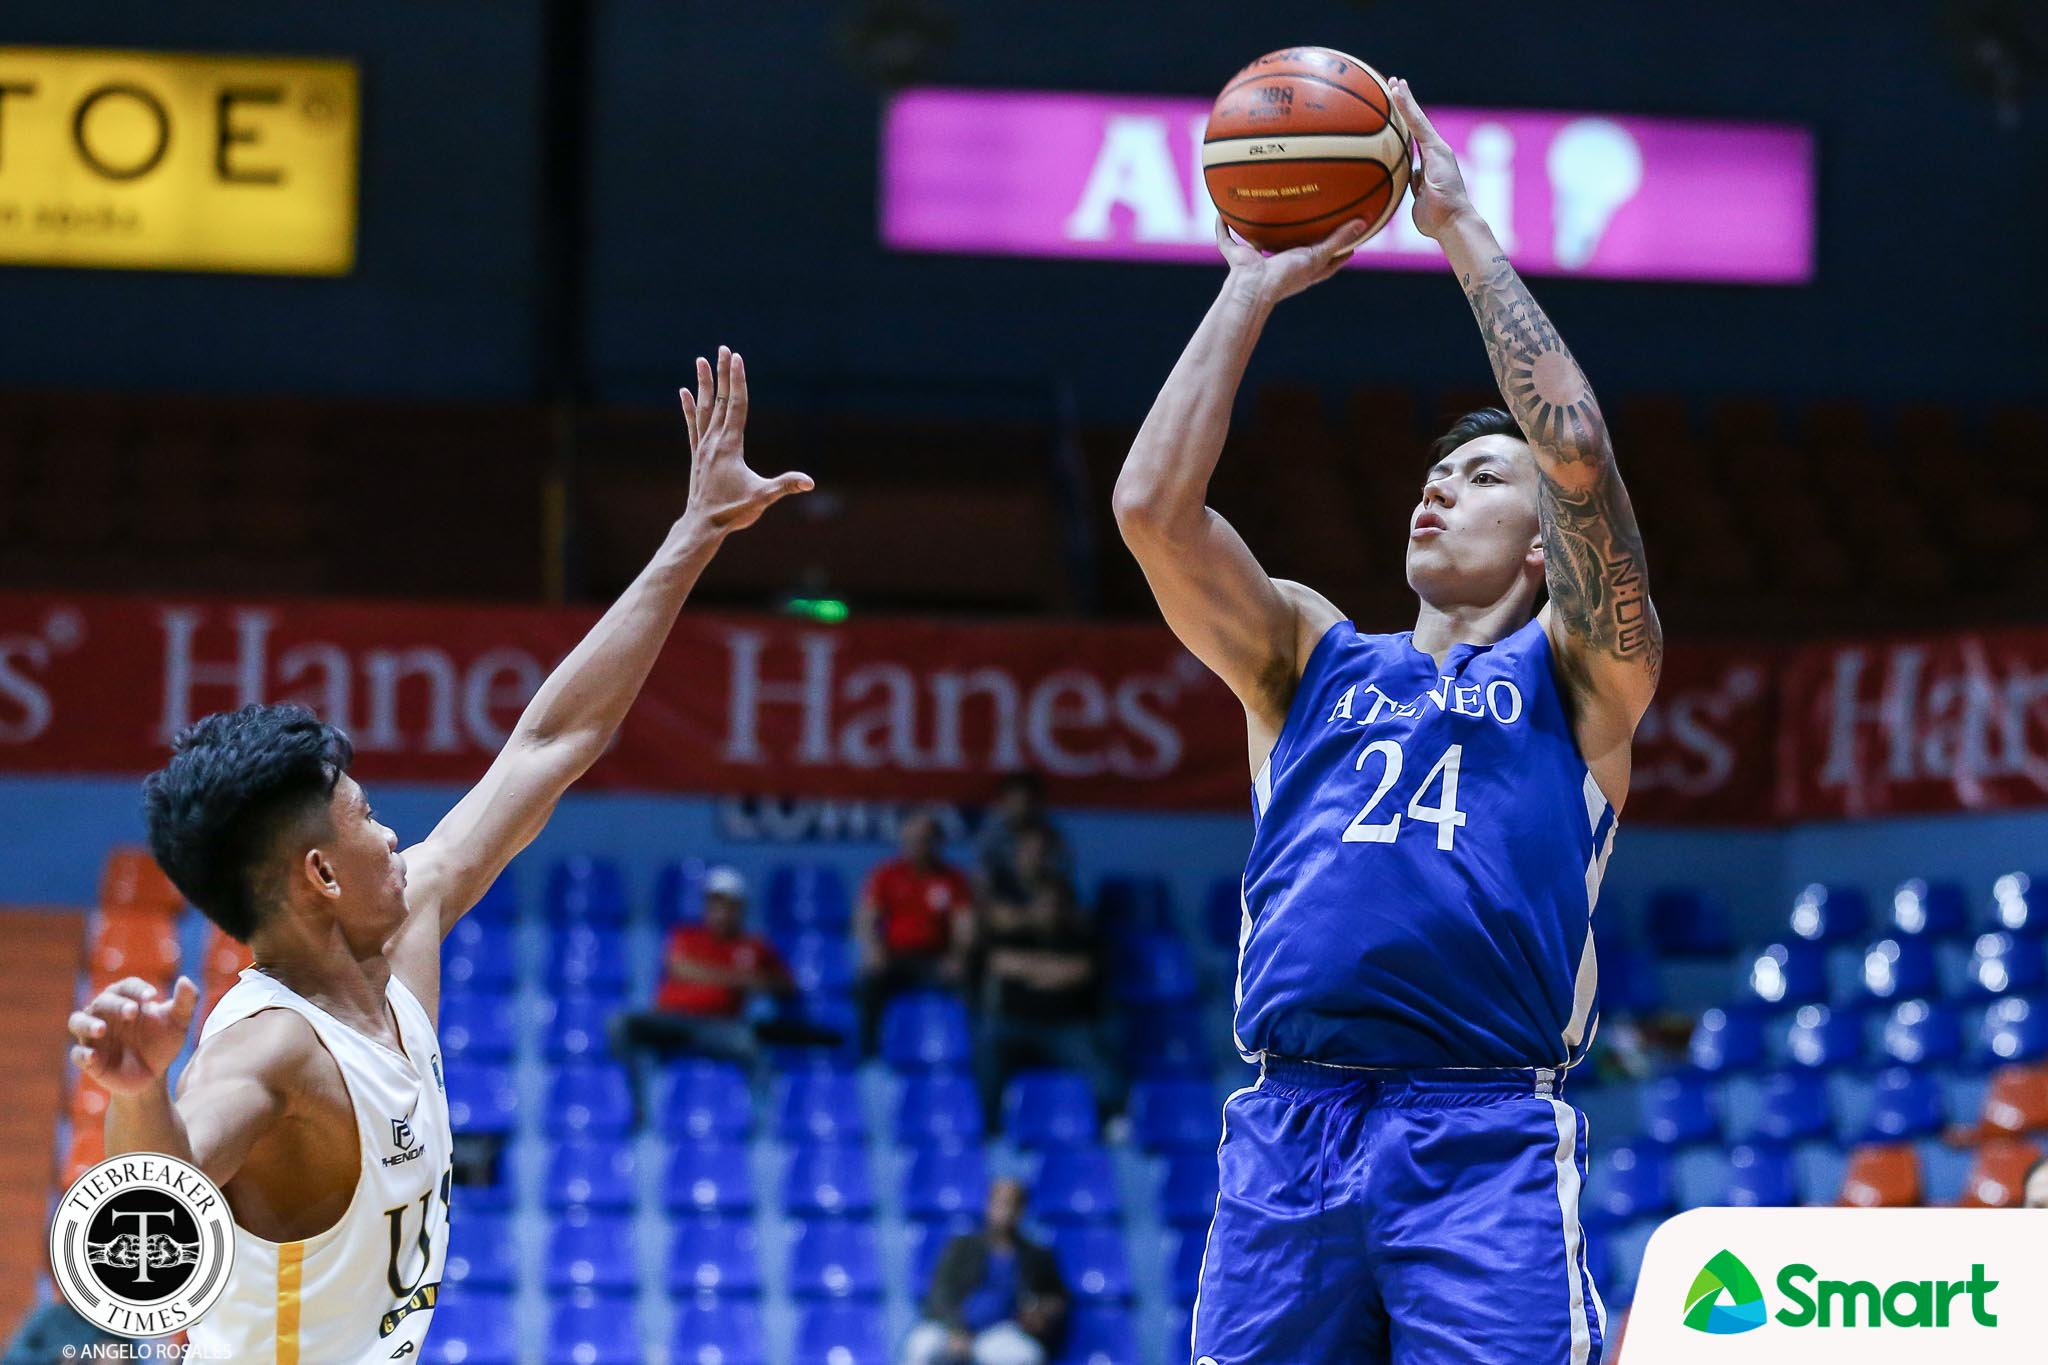 PCCL-2019-ADMU-vs-UST-ADMU-RAMOS Dwight Ramos believes Ateneo will be 'super strong' even without him ADMU Basketball News UAAP  - philippine sports news